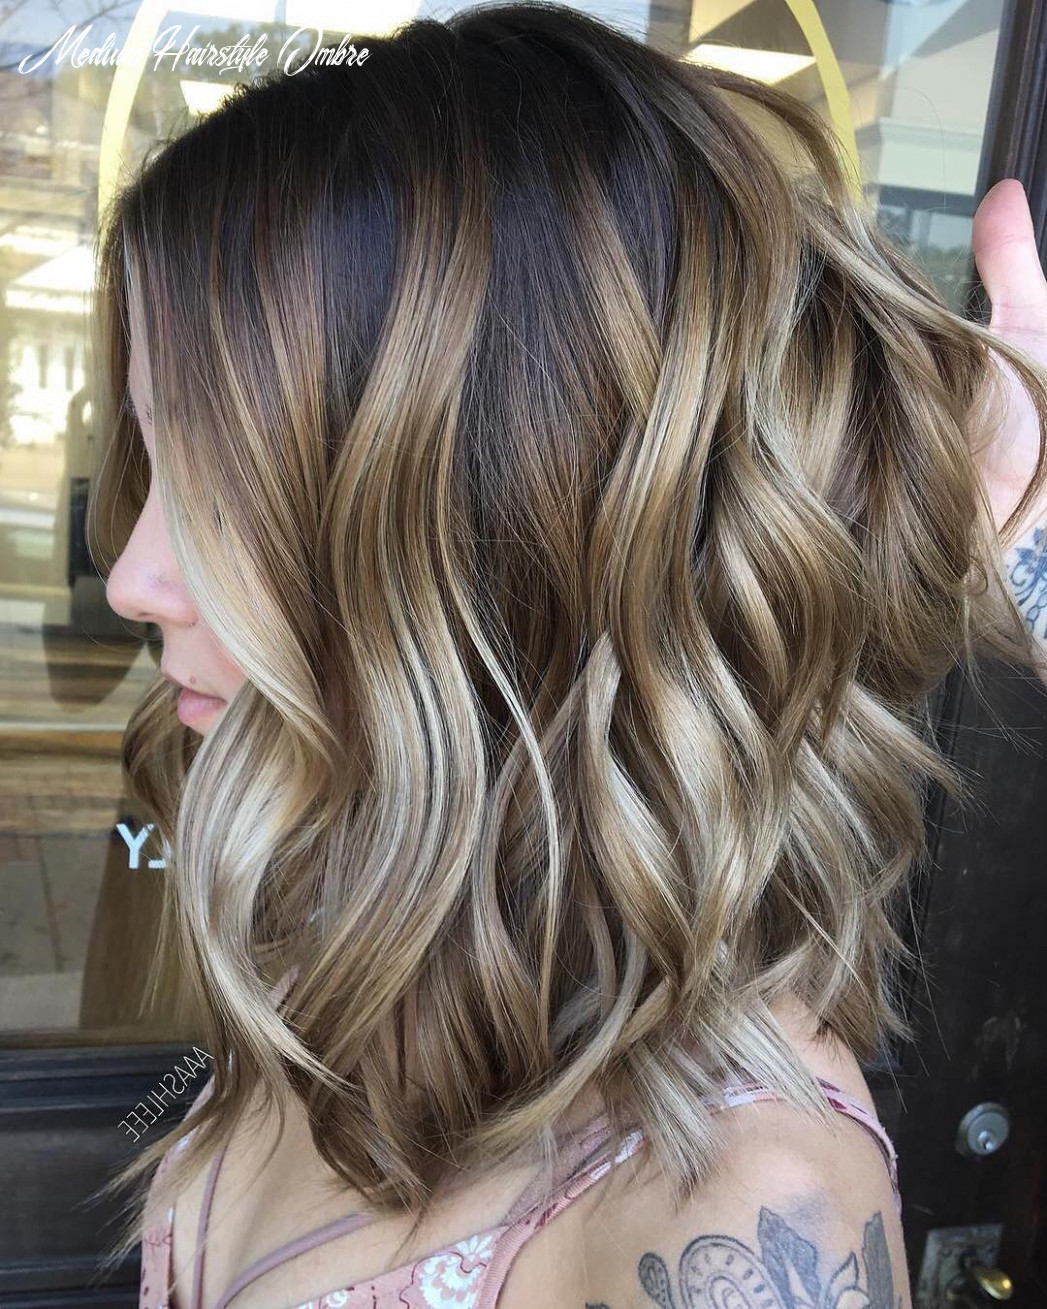 11 ombre balayage hairstyles for medium length hair, hair color 11 medium hairstyle ombre